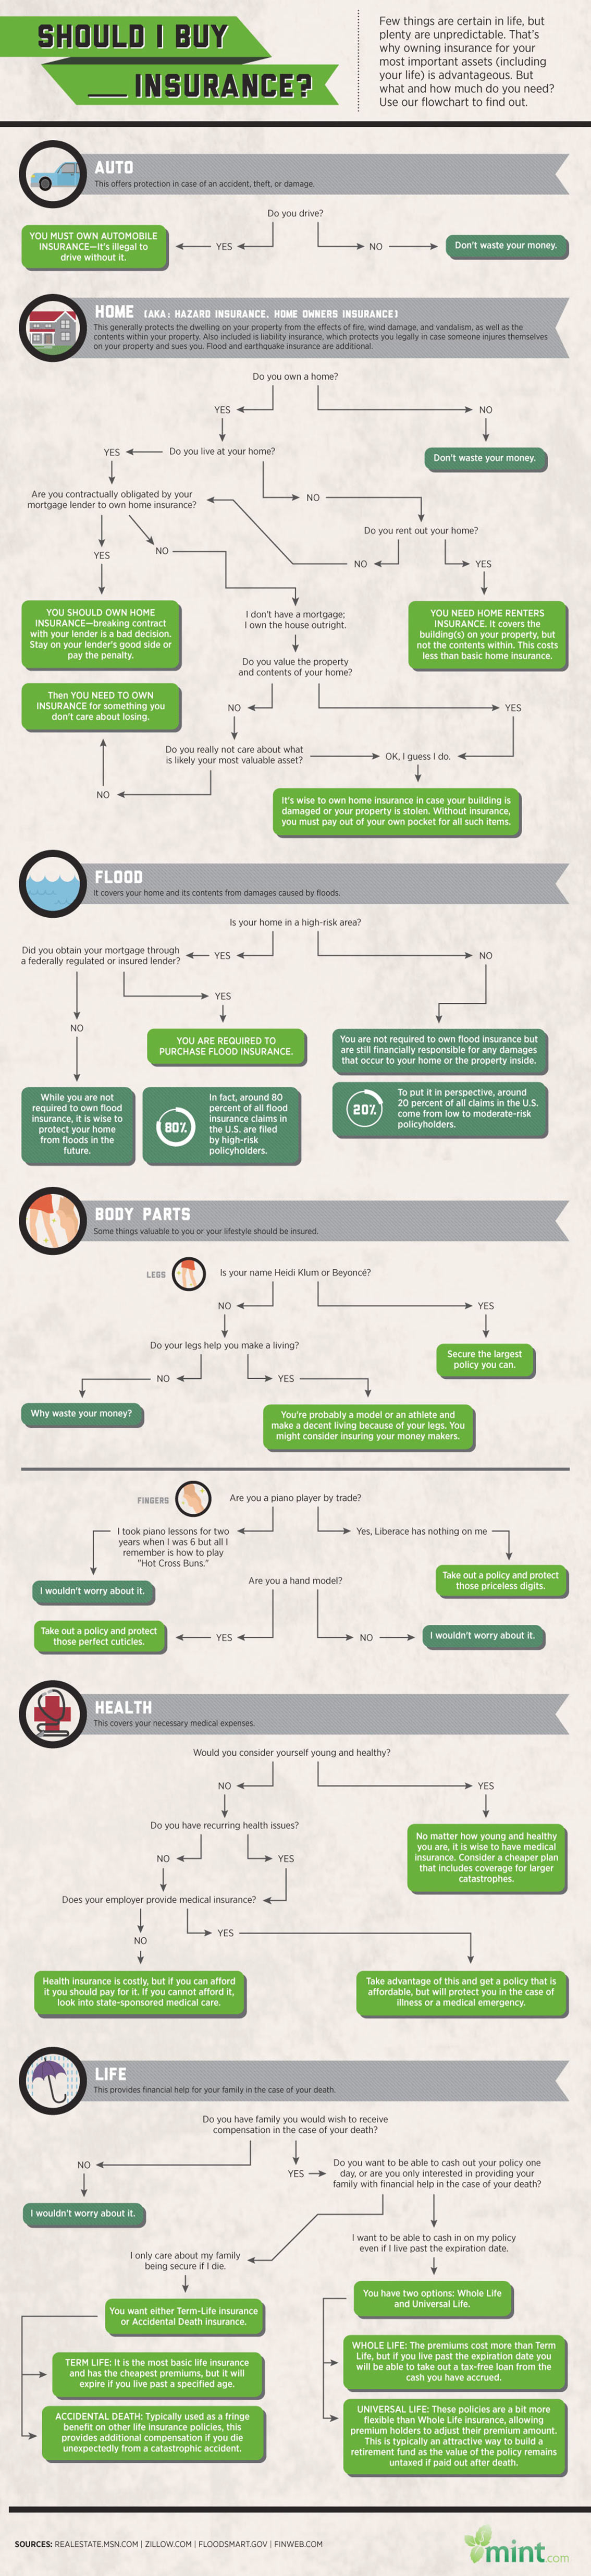 Should I Buy Insurance Infographic